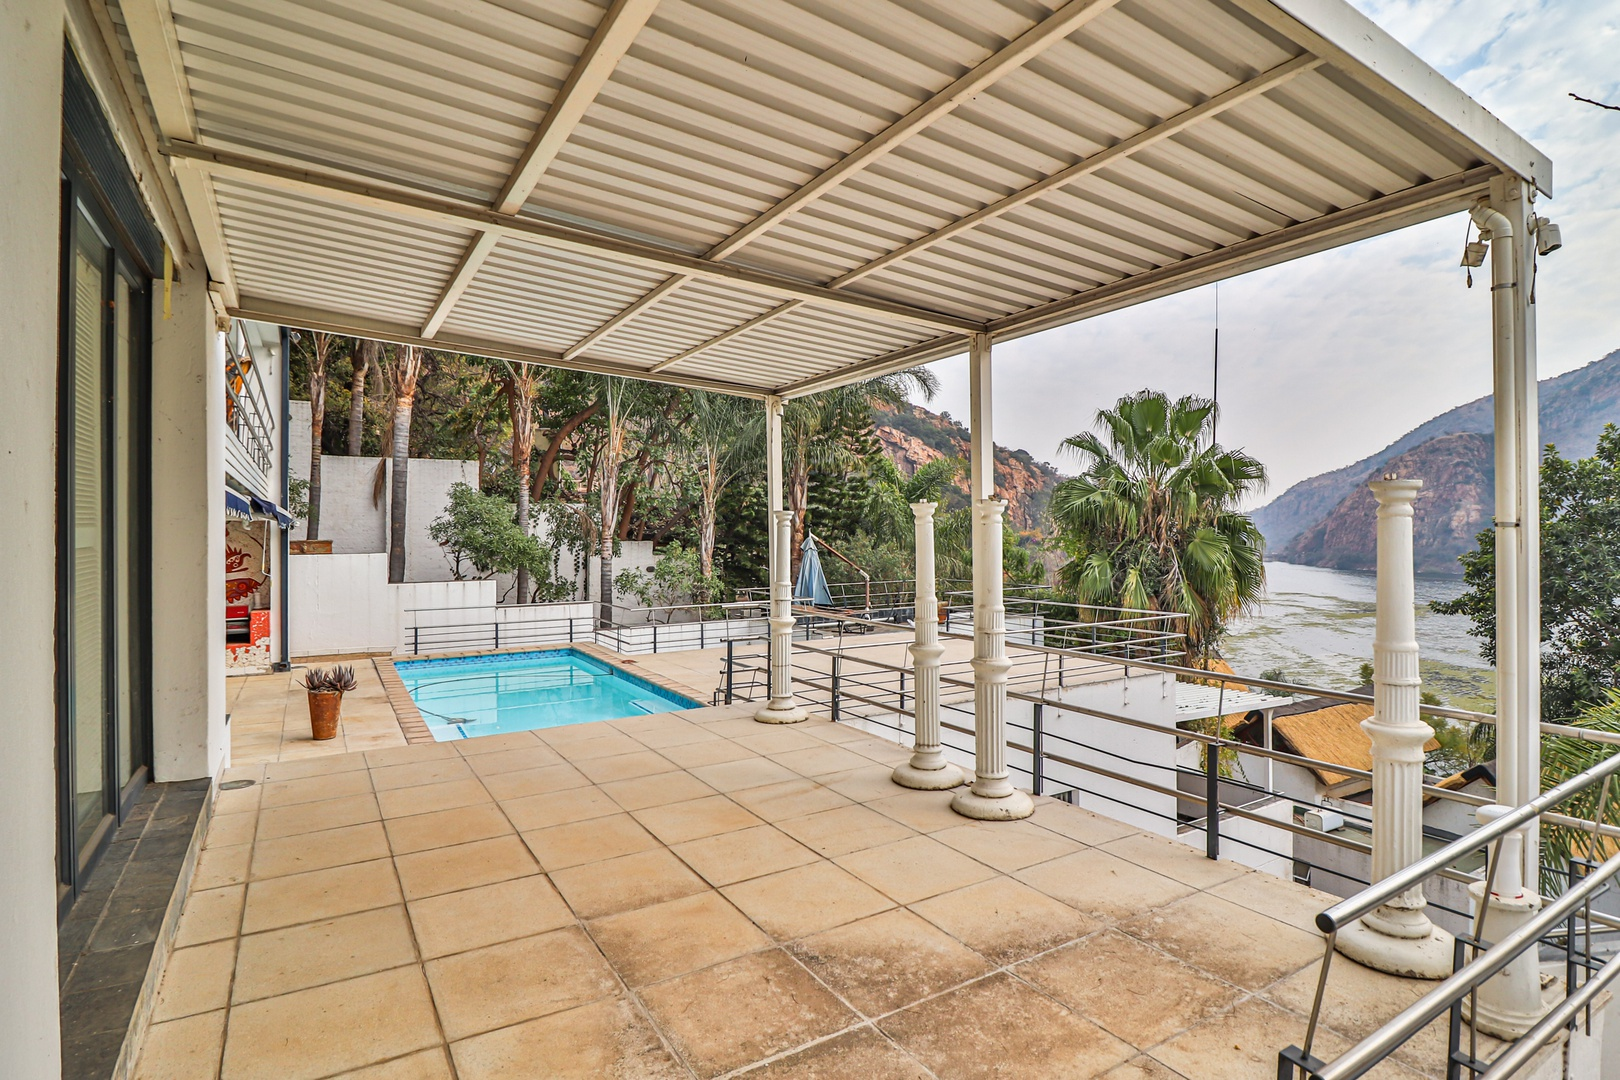 House in Kosmos Village - Pool deck is spacious with plenty of entertaining space